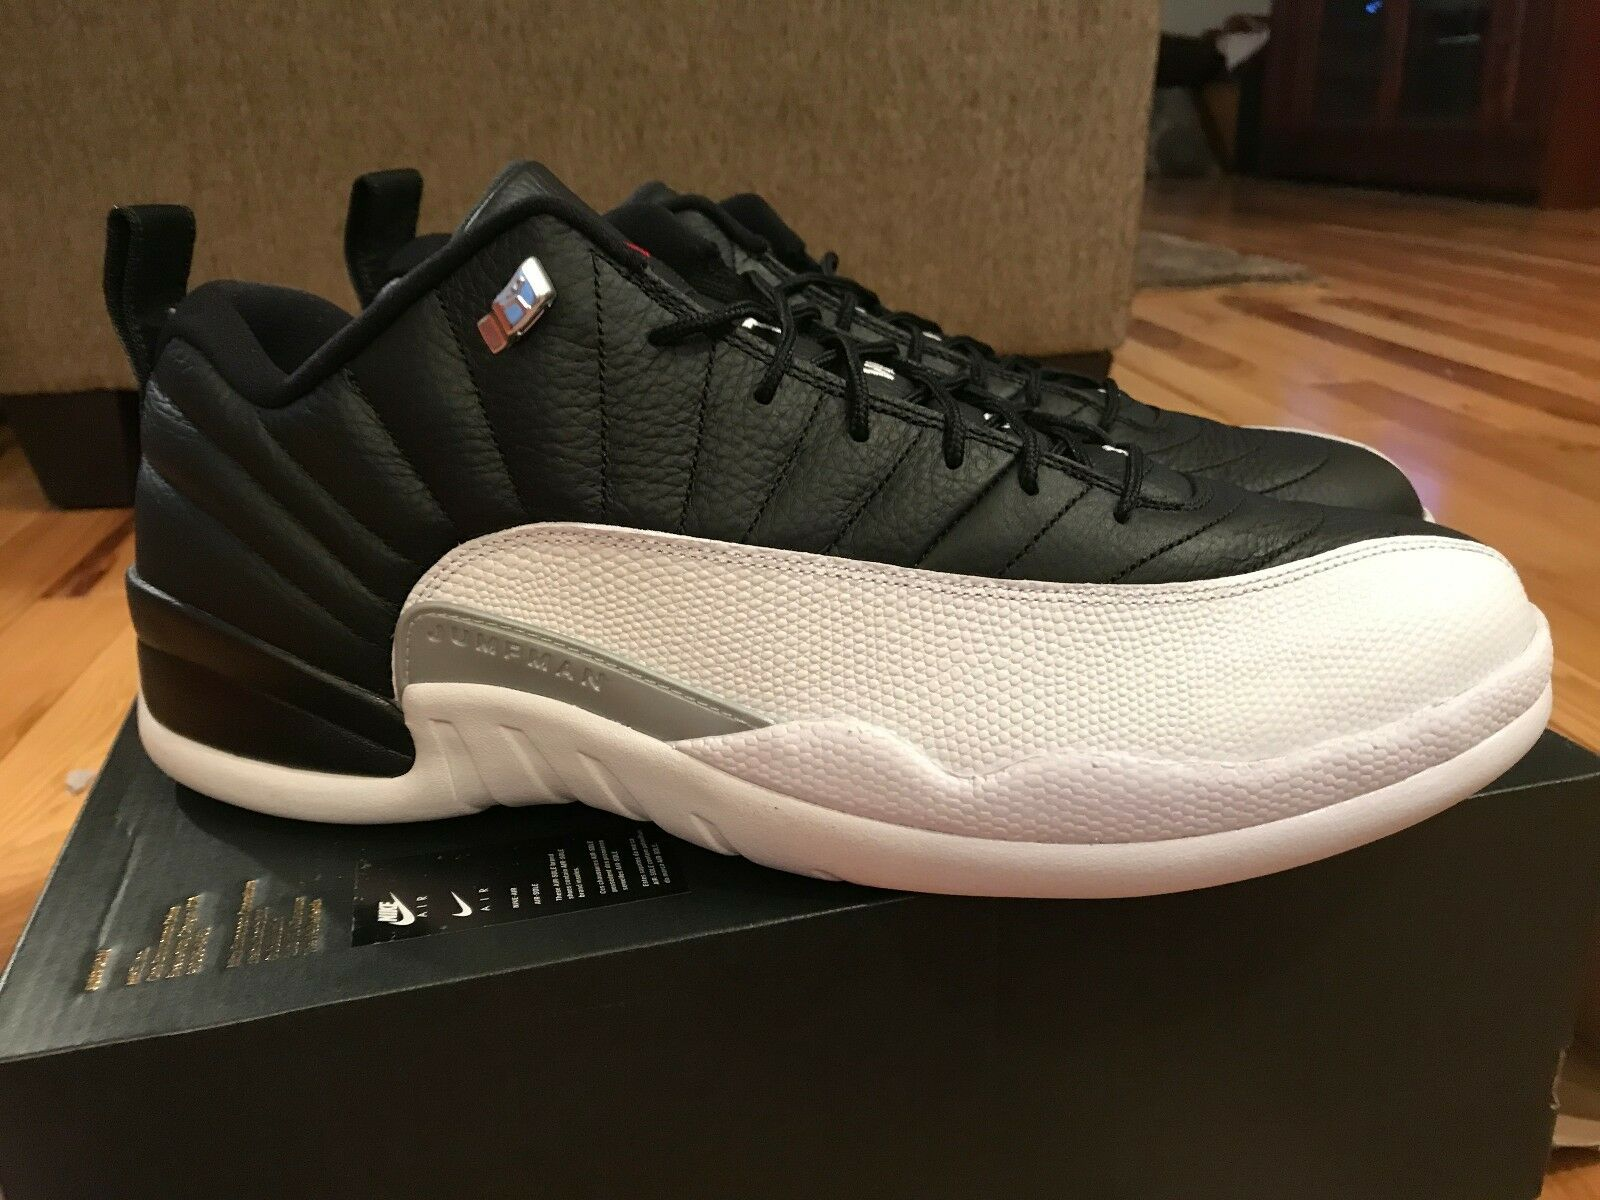 100% authentic 6b8f1 bb5ea netherlands nike air jordan comodo retro 12 playoff xii bajo 308317 004  comodo jordan gran descuento